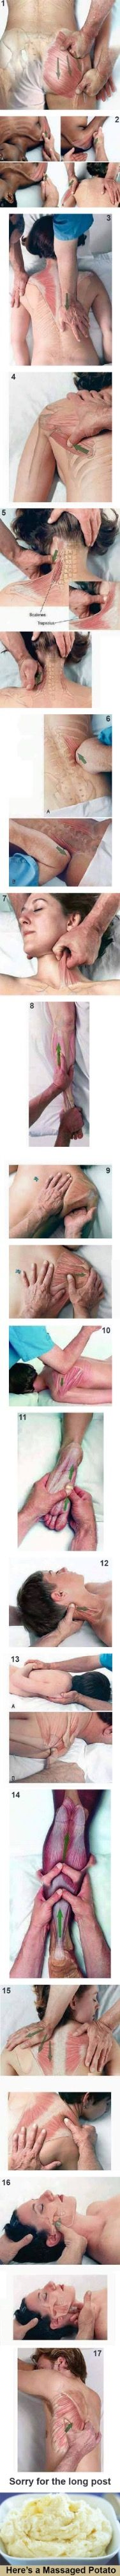 Click to read | image: How to give a GREAT massage!